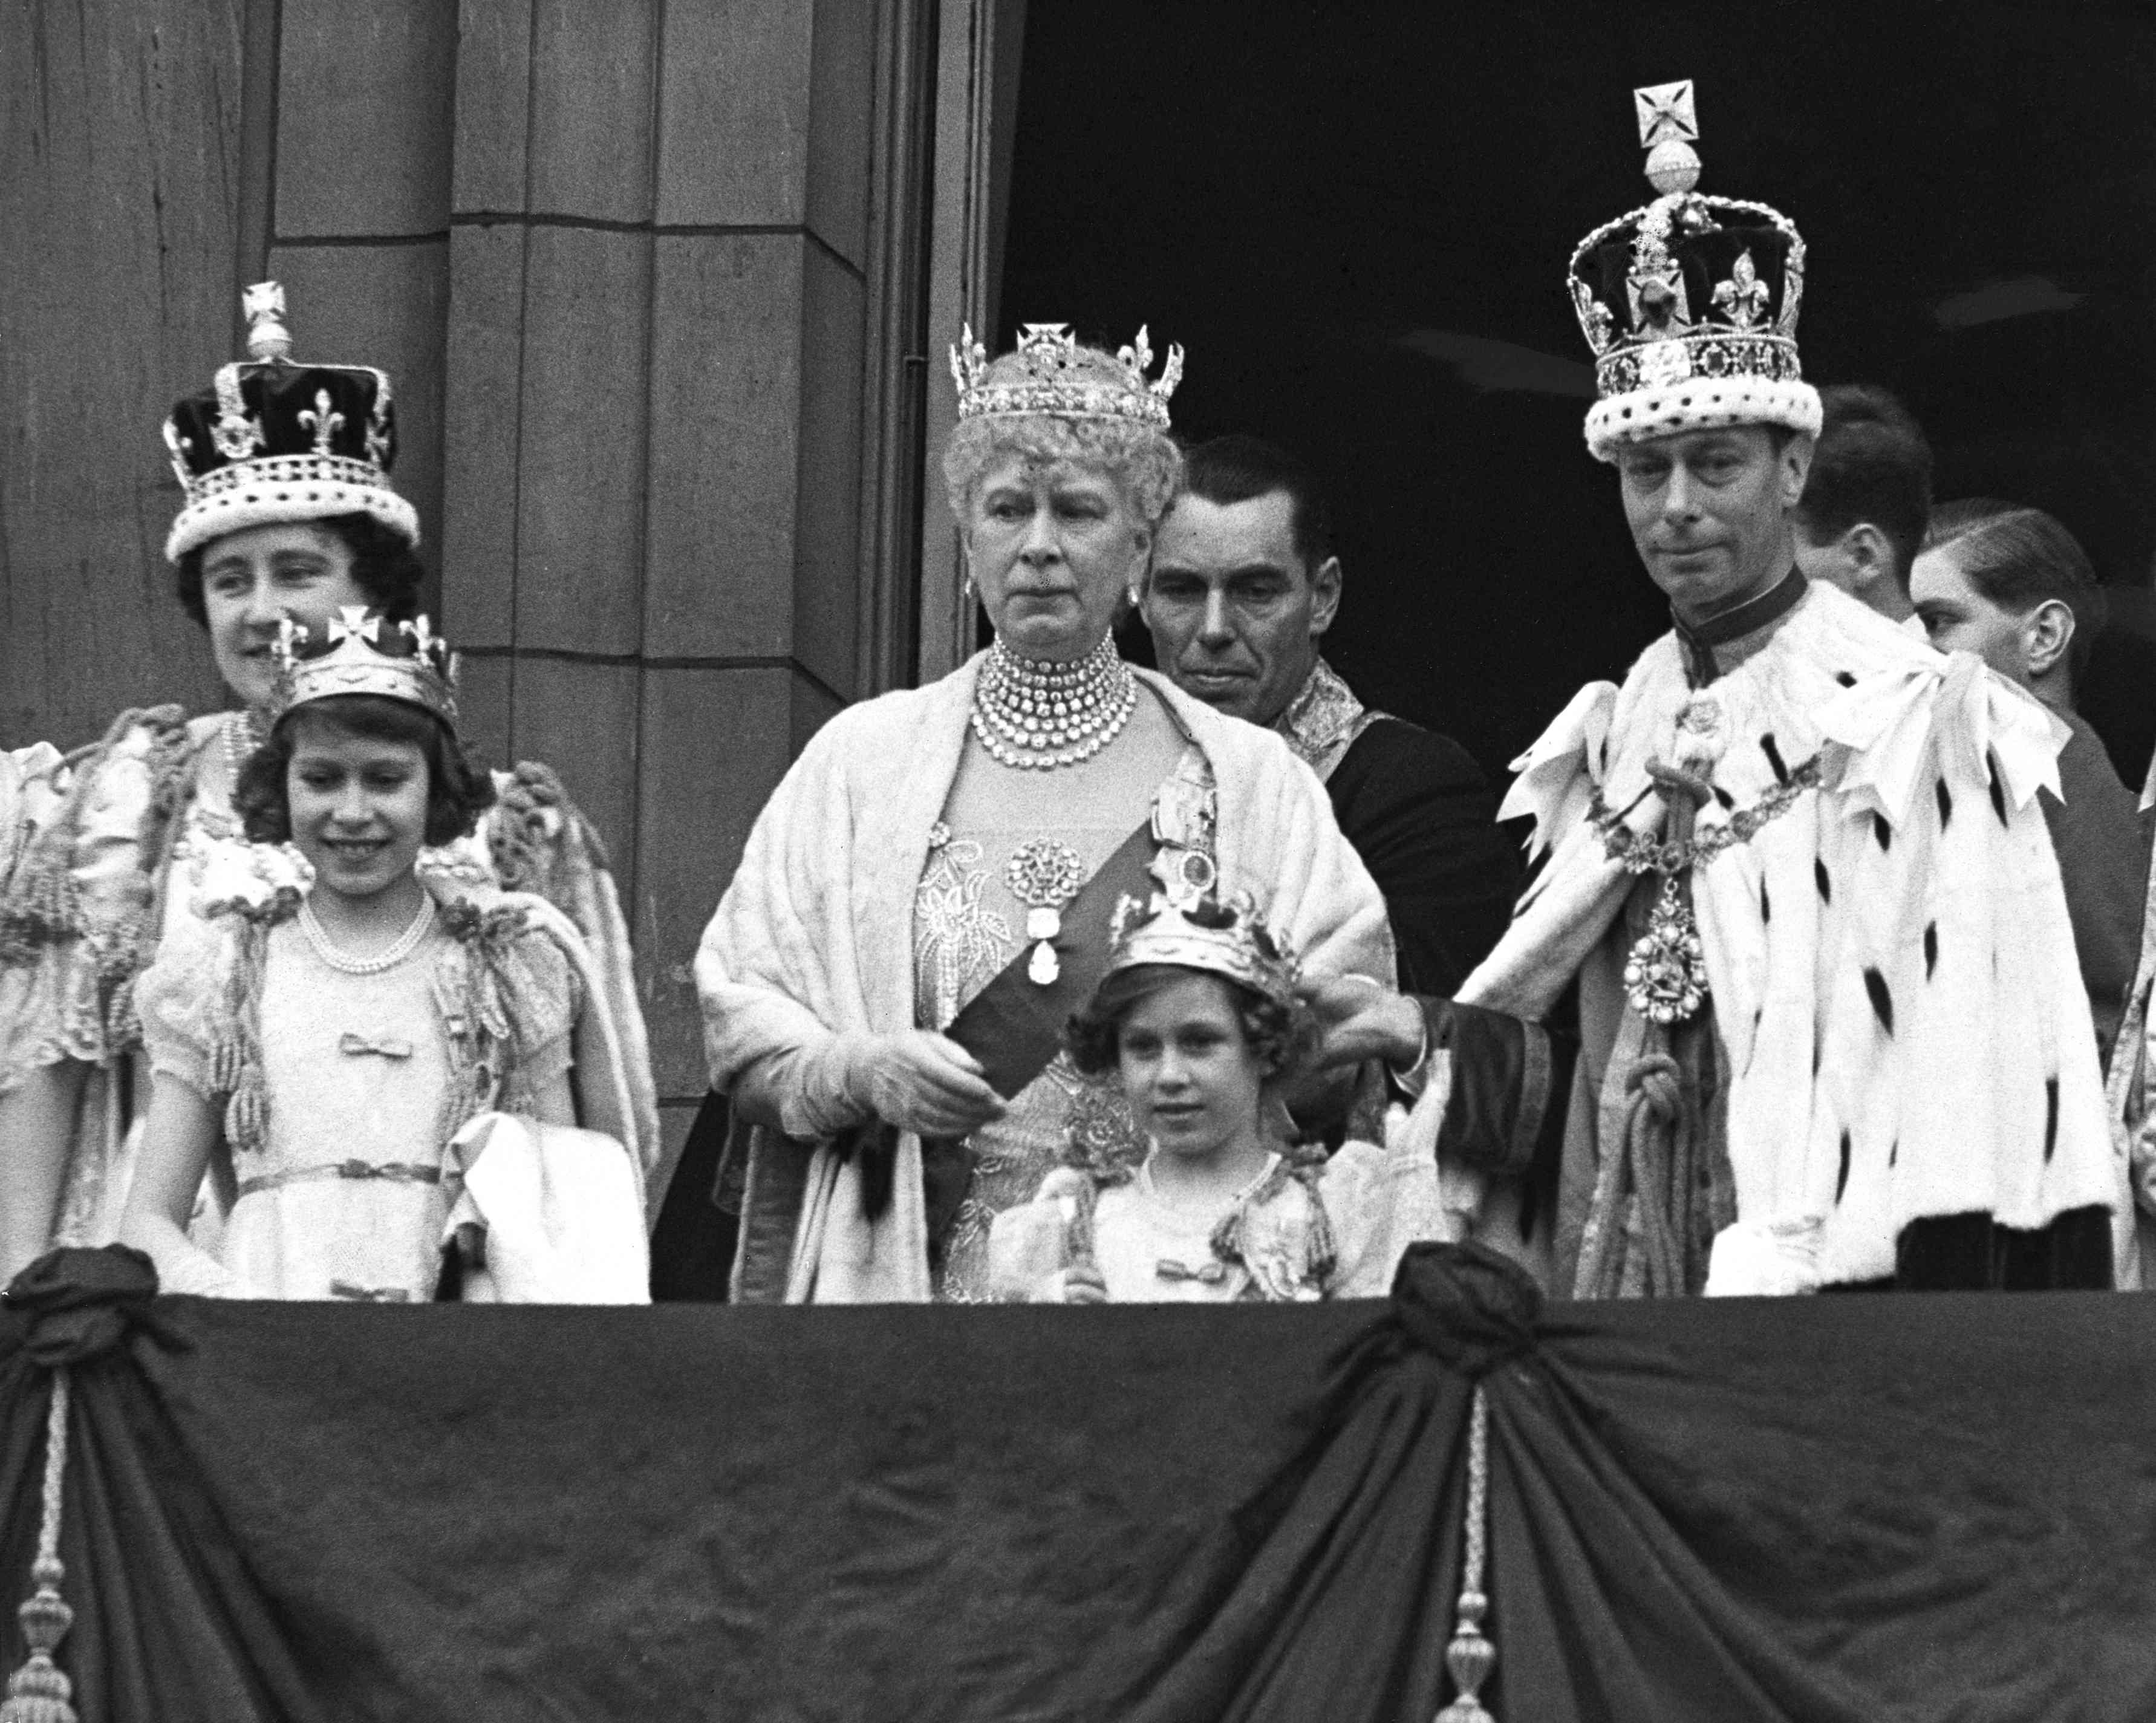 Queen Mary and family at the coronation of George VI